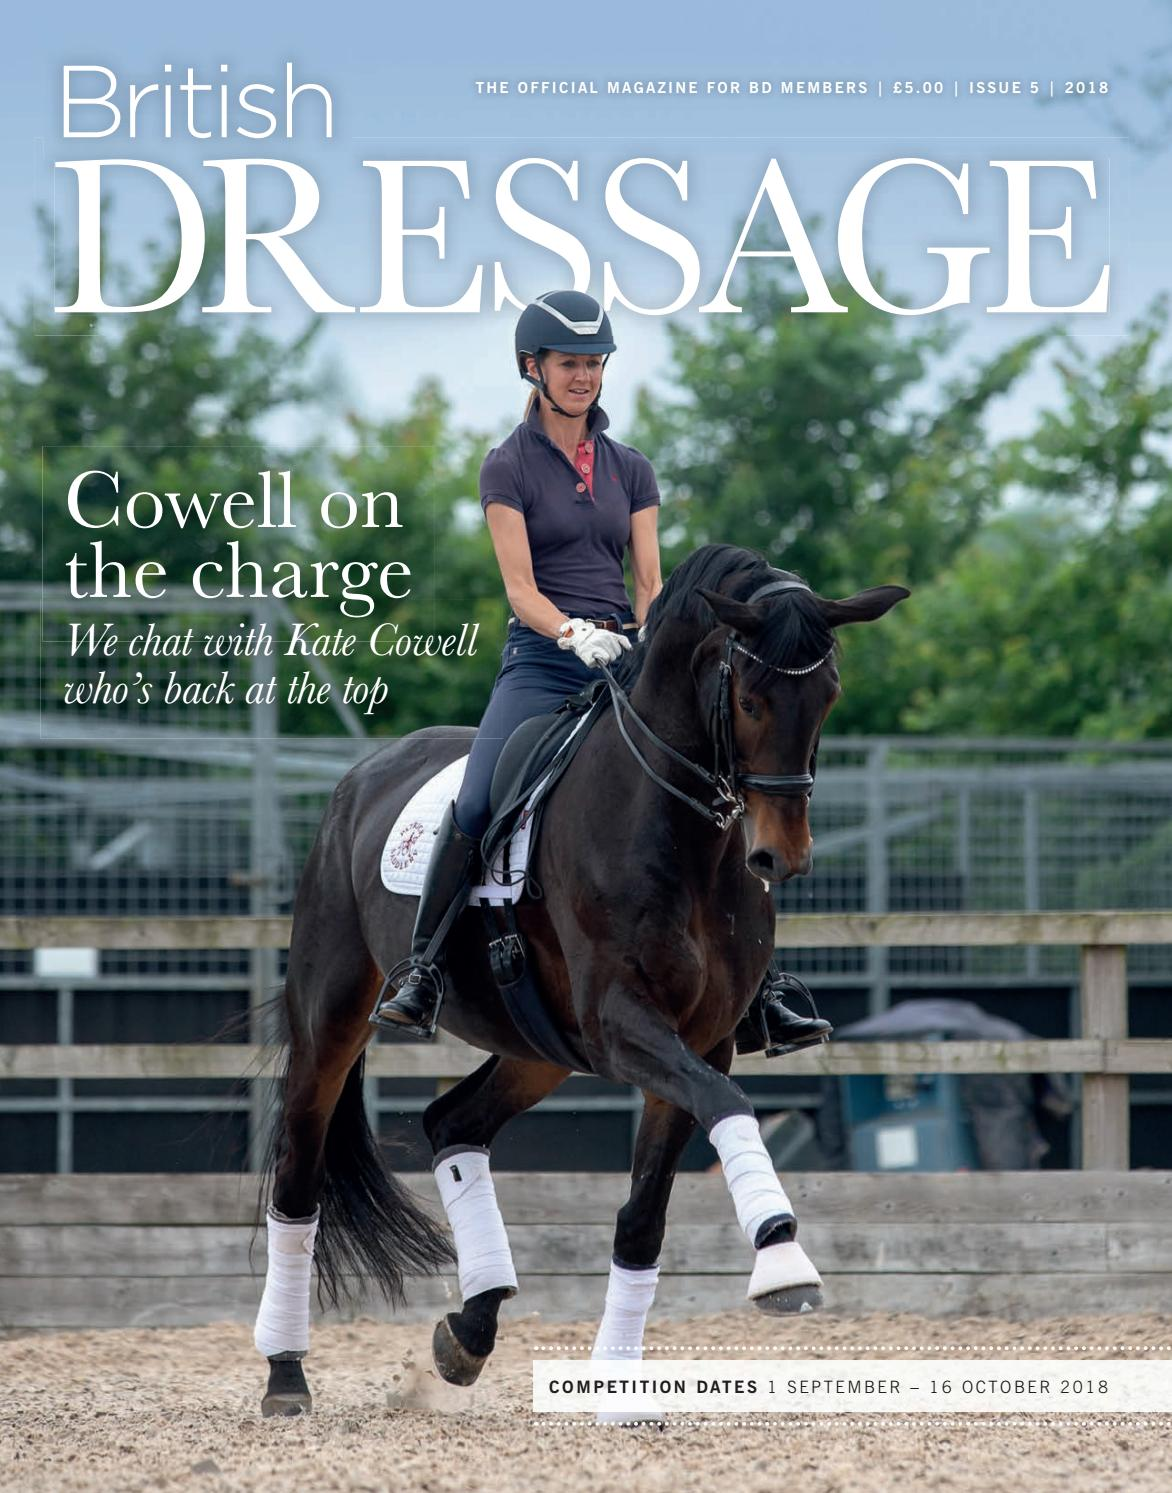 Dressage british rules what to wear forecasting dress in winter in 2019